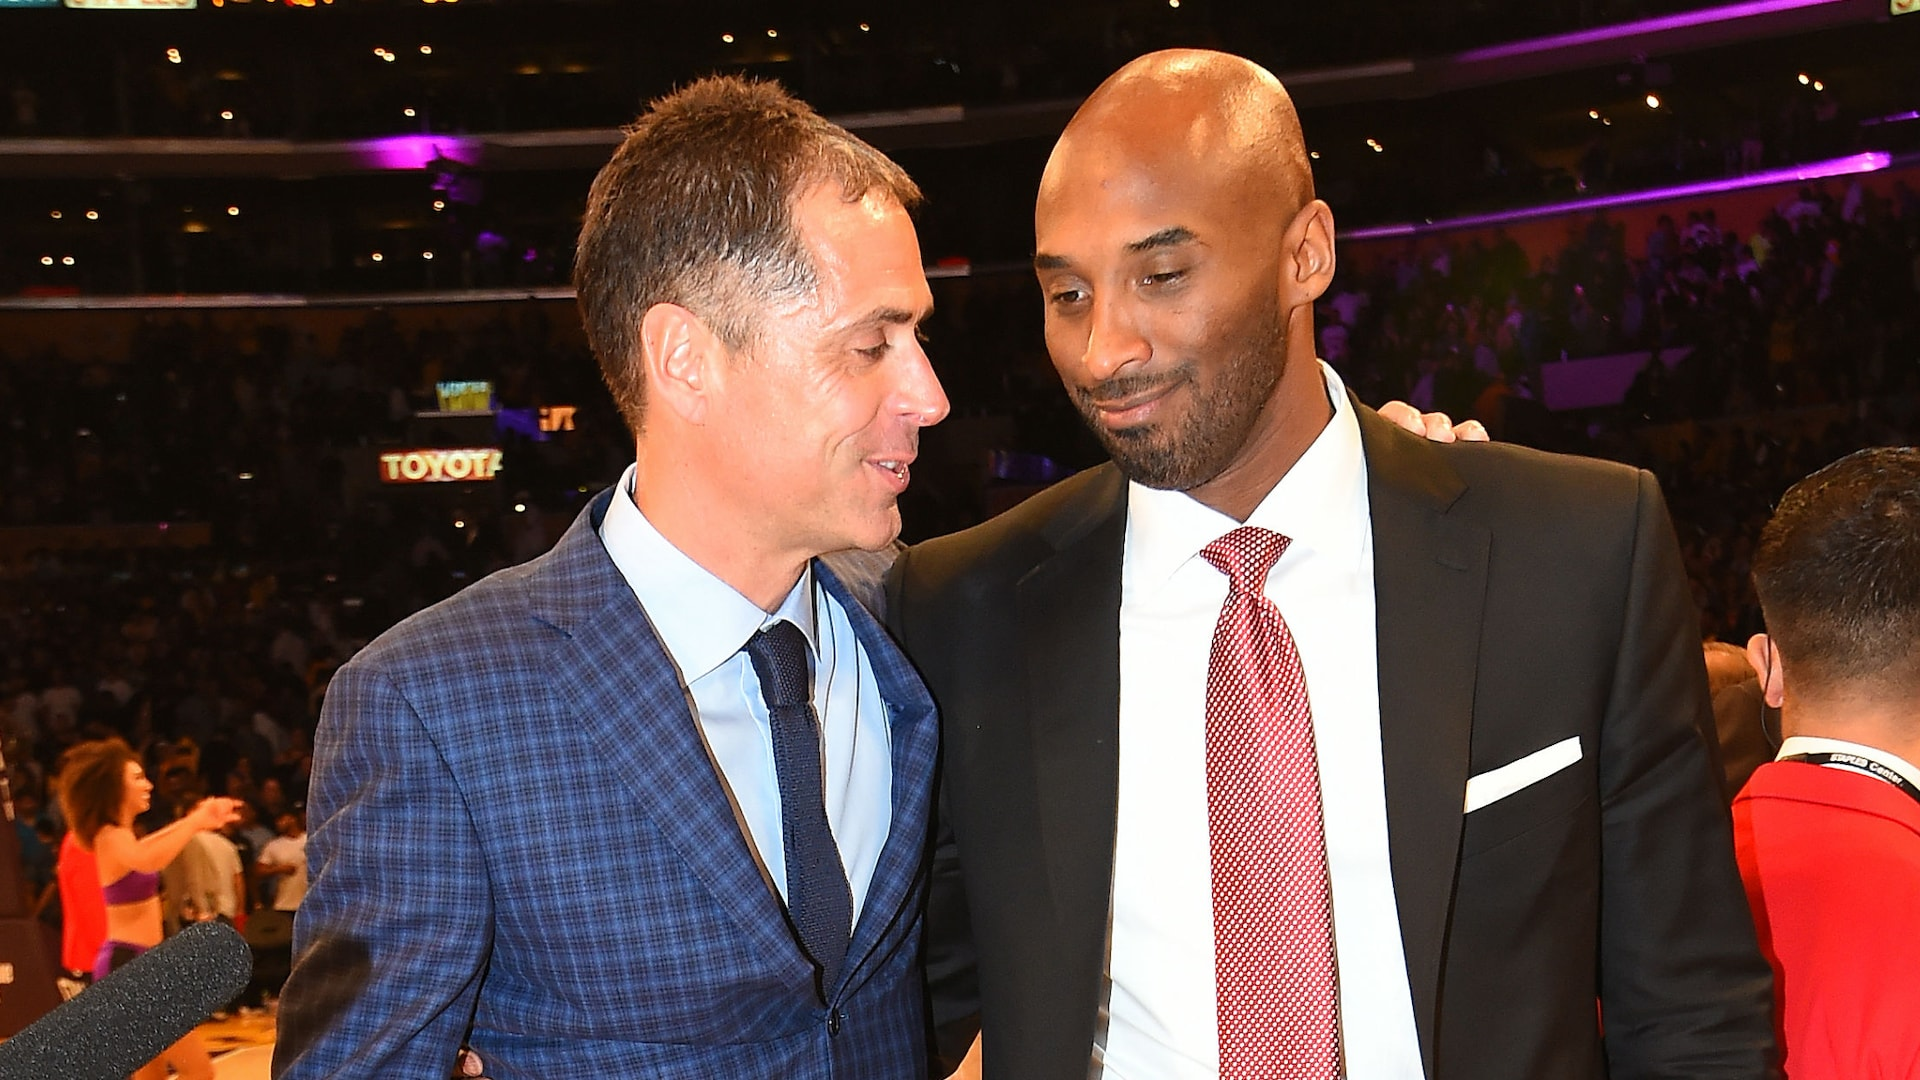 Rob Pelinka: 'I lost my best friend and my sweet goddaughter'